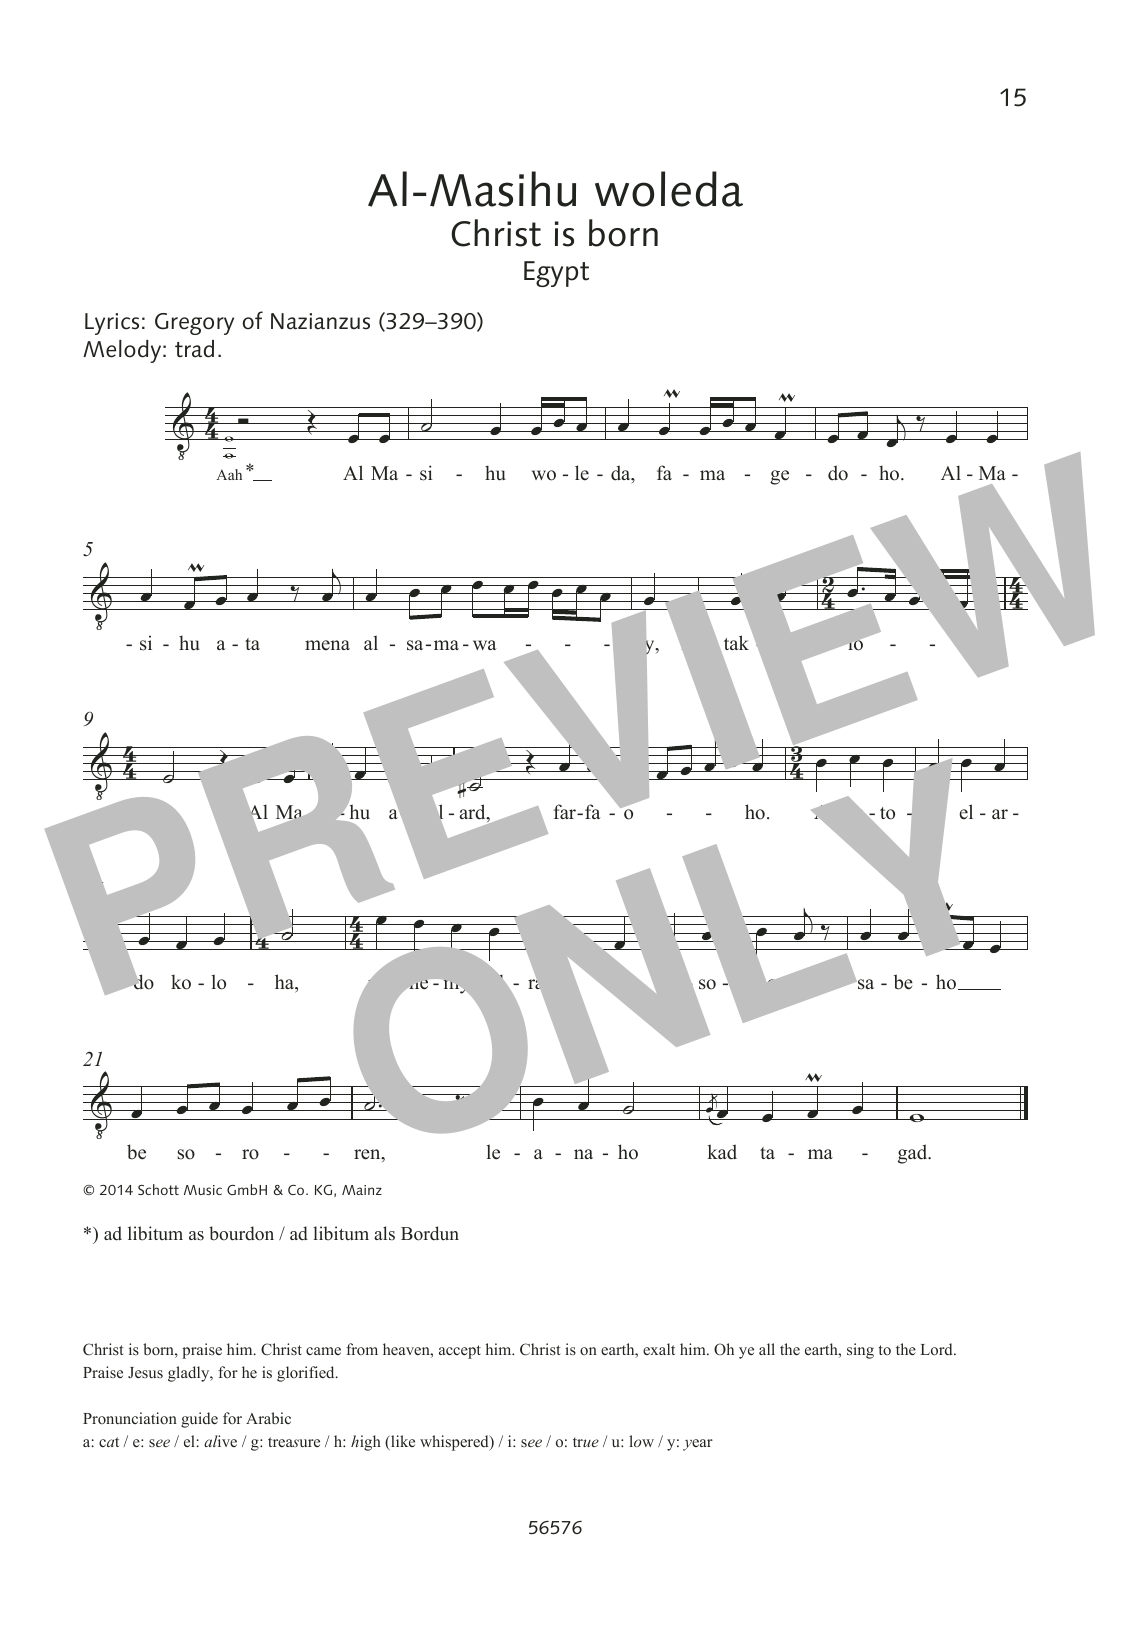 Gregory of Nazianzus Al-Masihu woleda sheet music preview music notes and score for Choir including 1 page(s)